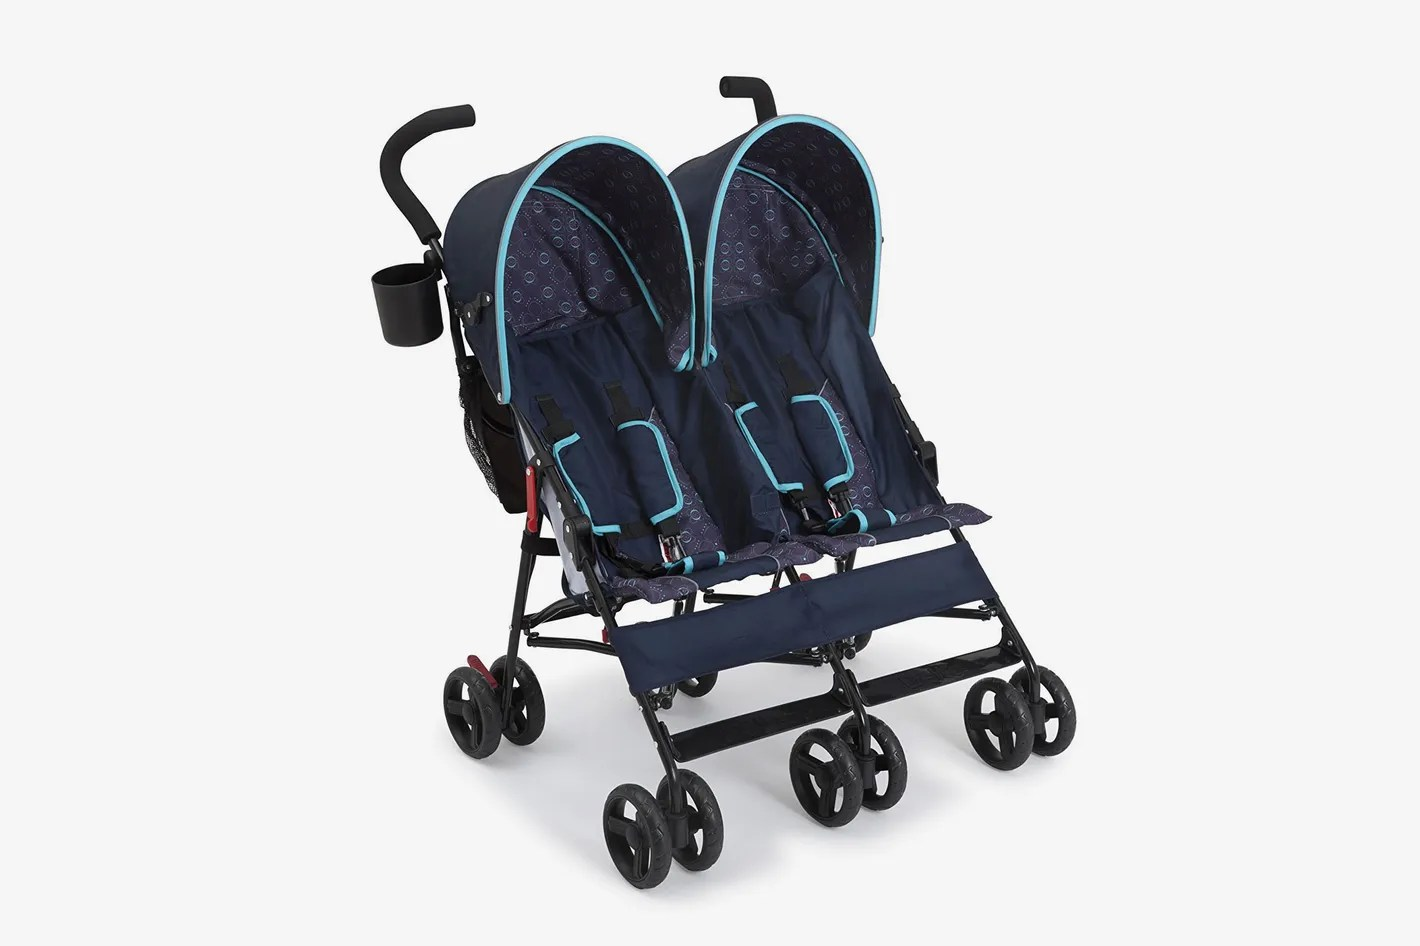 Double Pram Australia Reviews 8 Best Double Strollers 2019 The Strategist New York